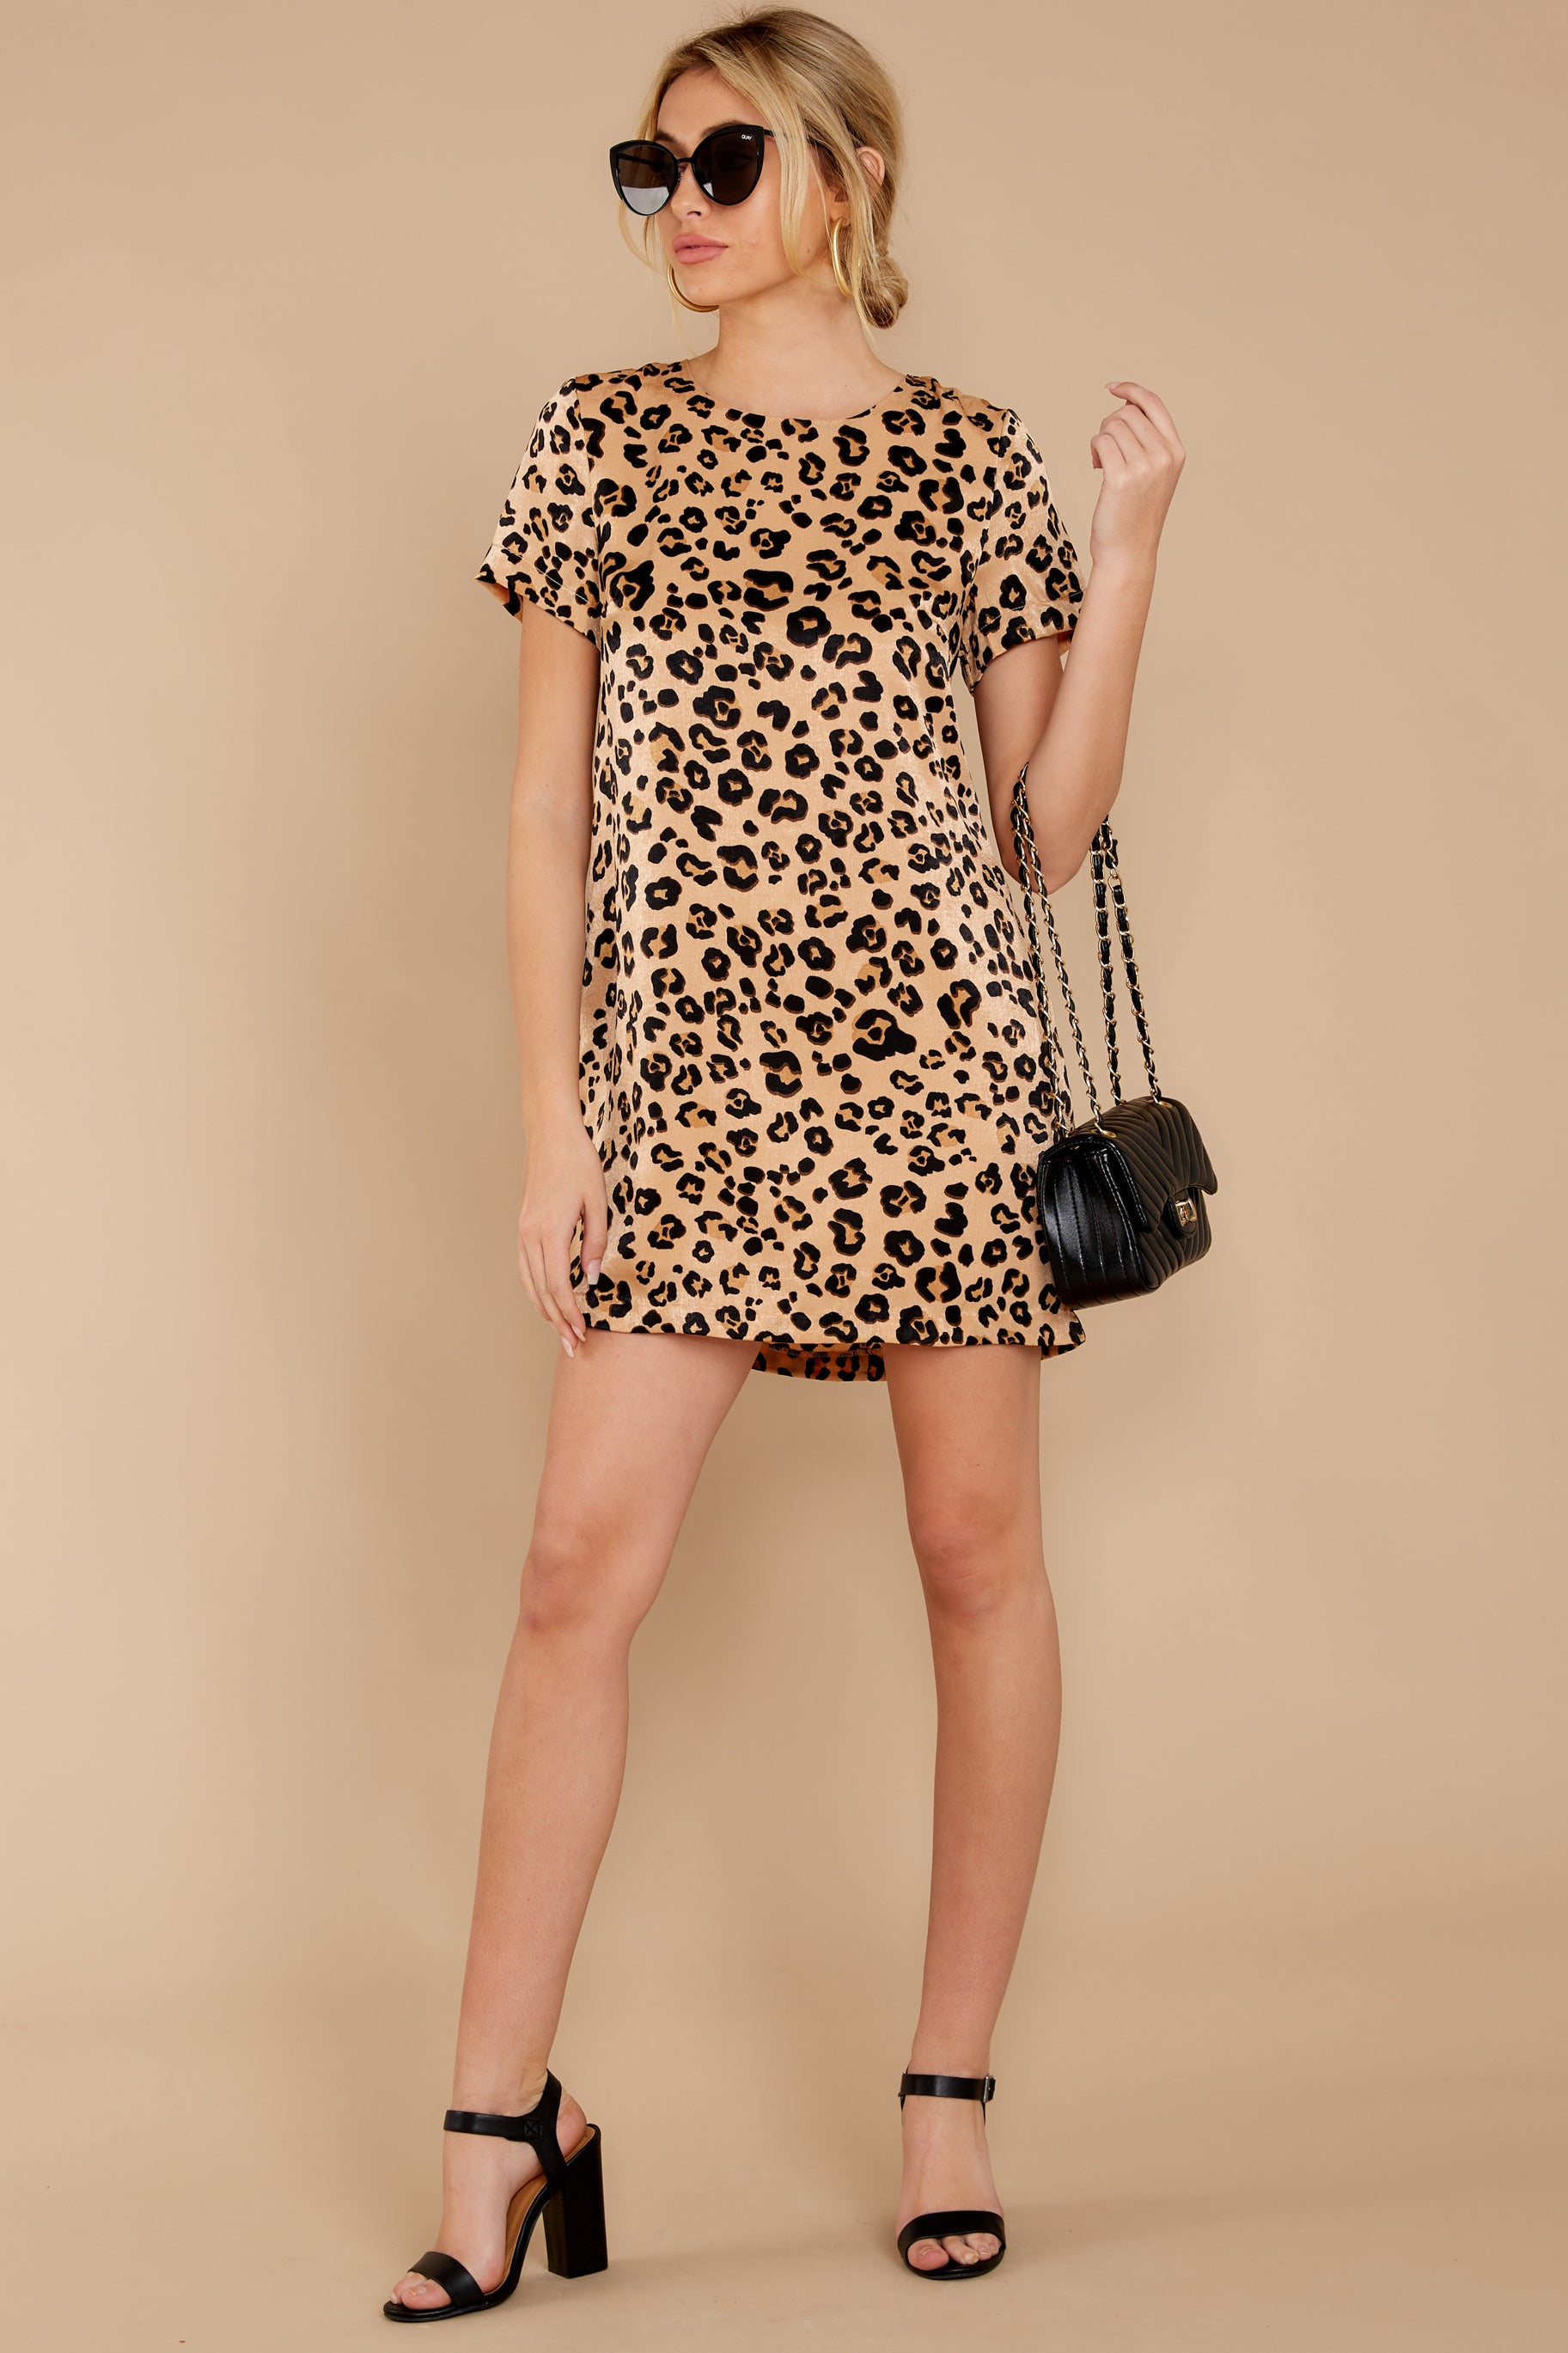 2 Party For Two Leopard Print Dress at reddressboutique.com